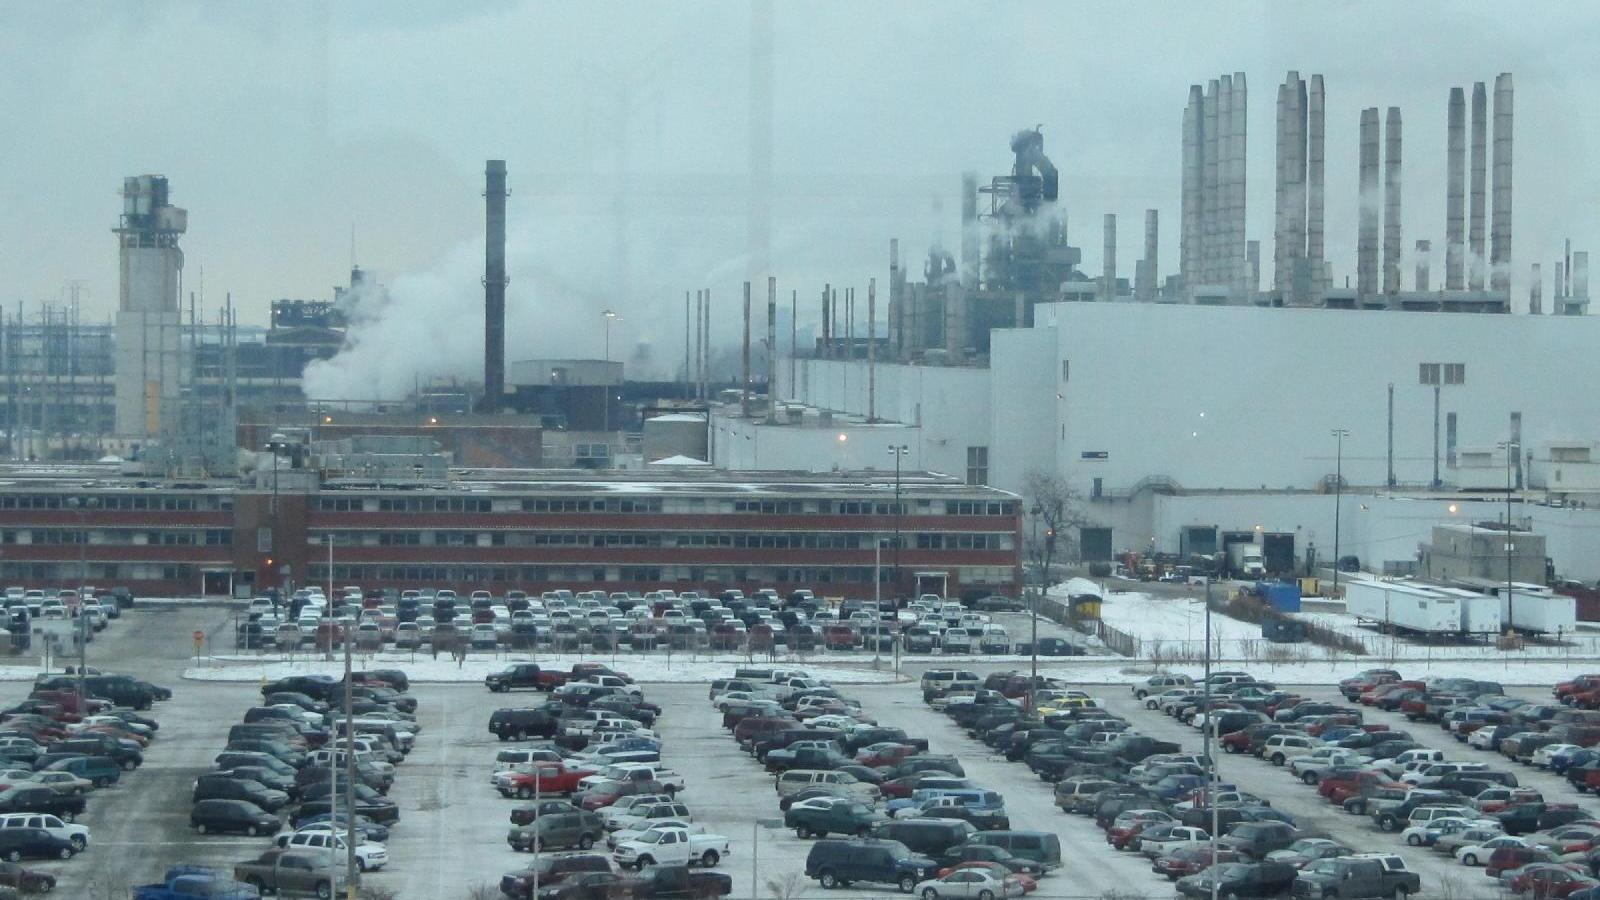 Ford Rouge Assembly Plant, Michigan, where Ford F-150 pickup trucks are built